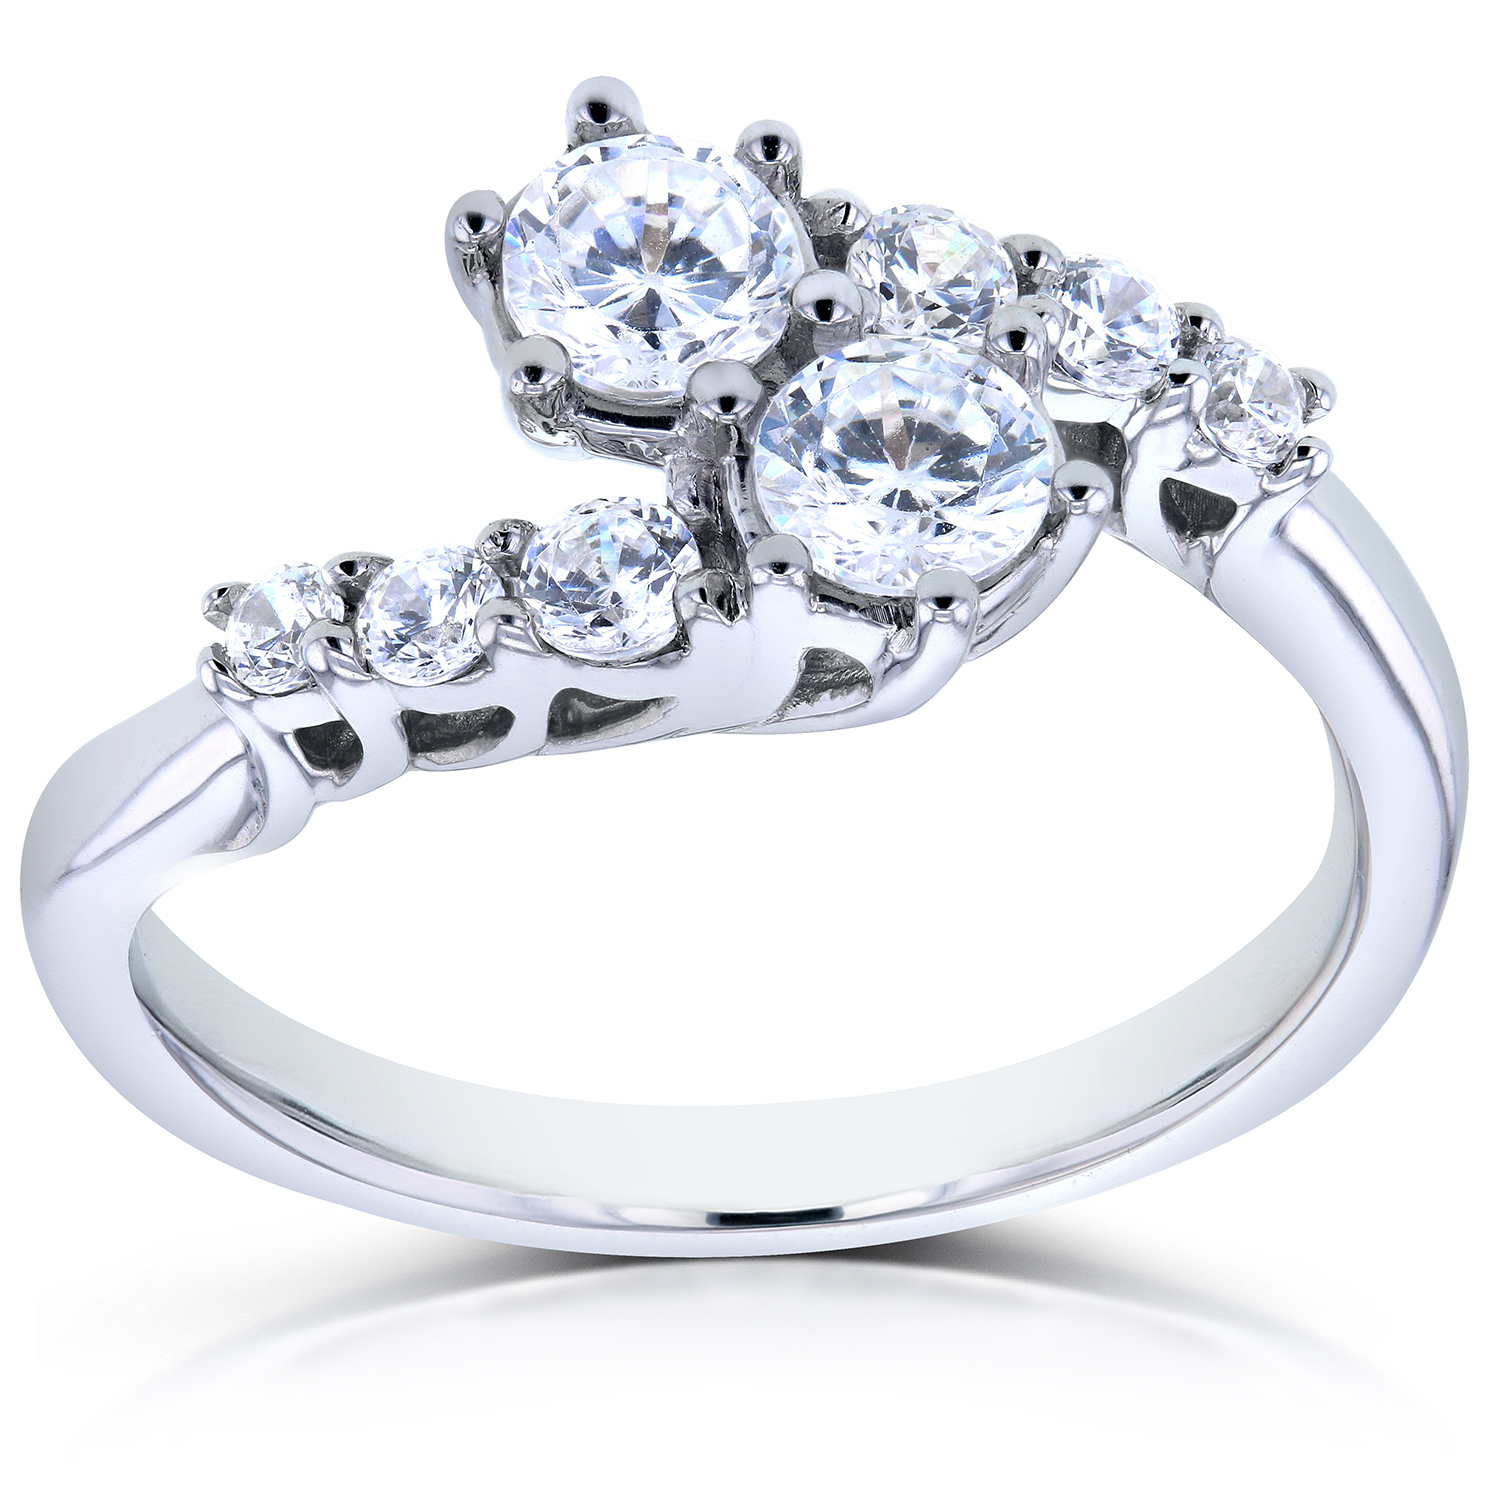 Dealmoon Exclusive ! 60% OffDouble Diamond ring + 20% off sitewide AND Free Necklace When Purchase Over $750 @ Kobelli